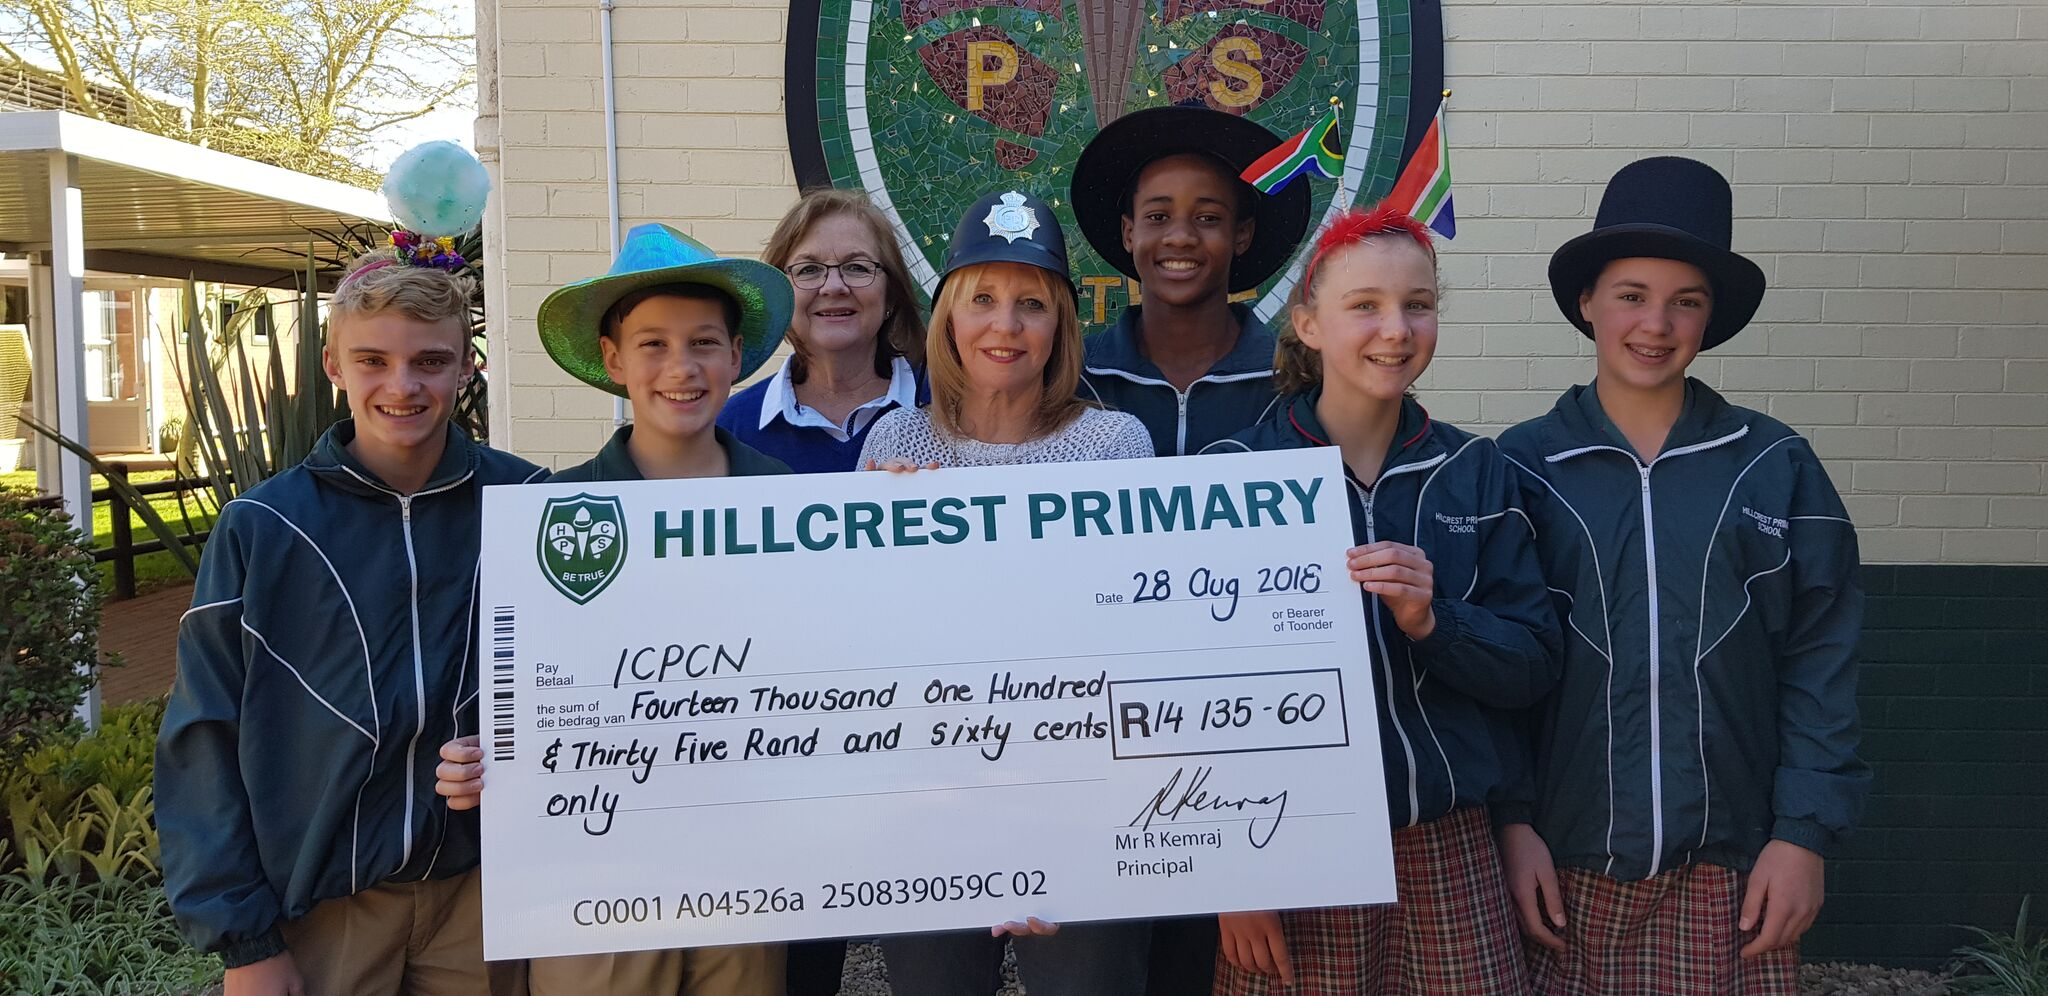 Funky Hat Day at Hillcrest Primary School kicks off ICPCN #HatsOn4CPC campaign